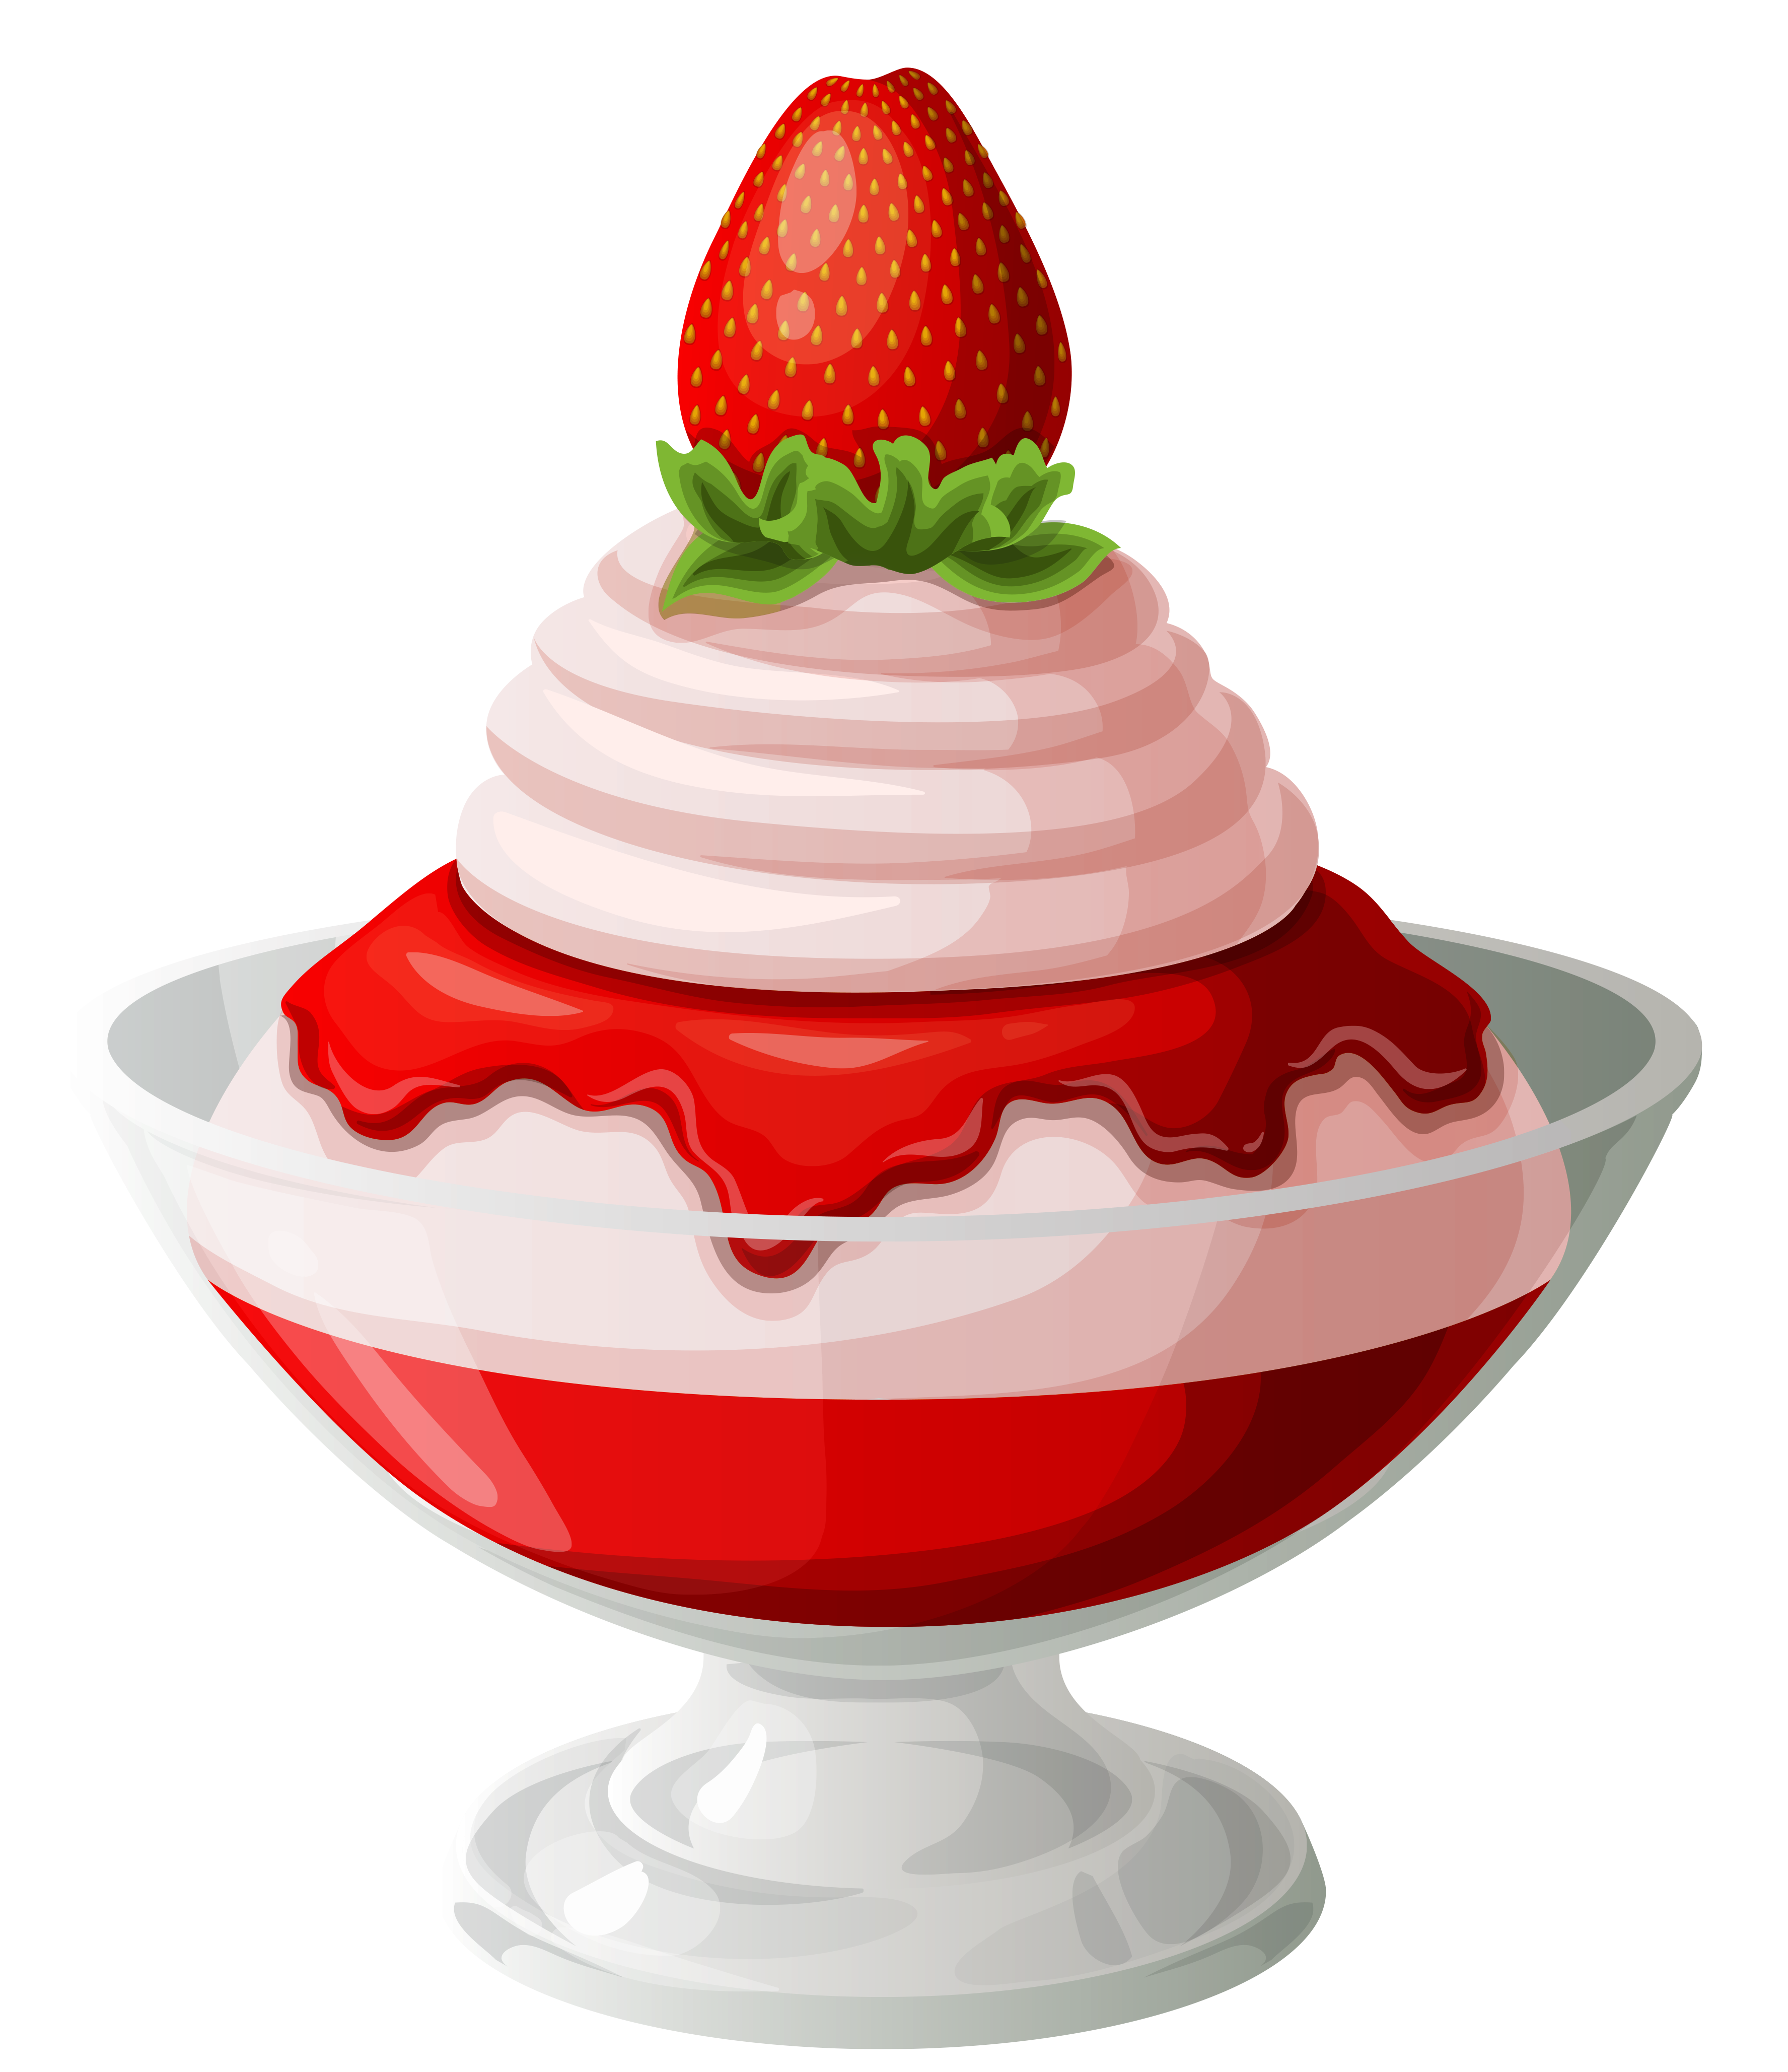 Strawberries and cream clipart.